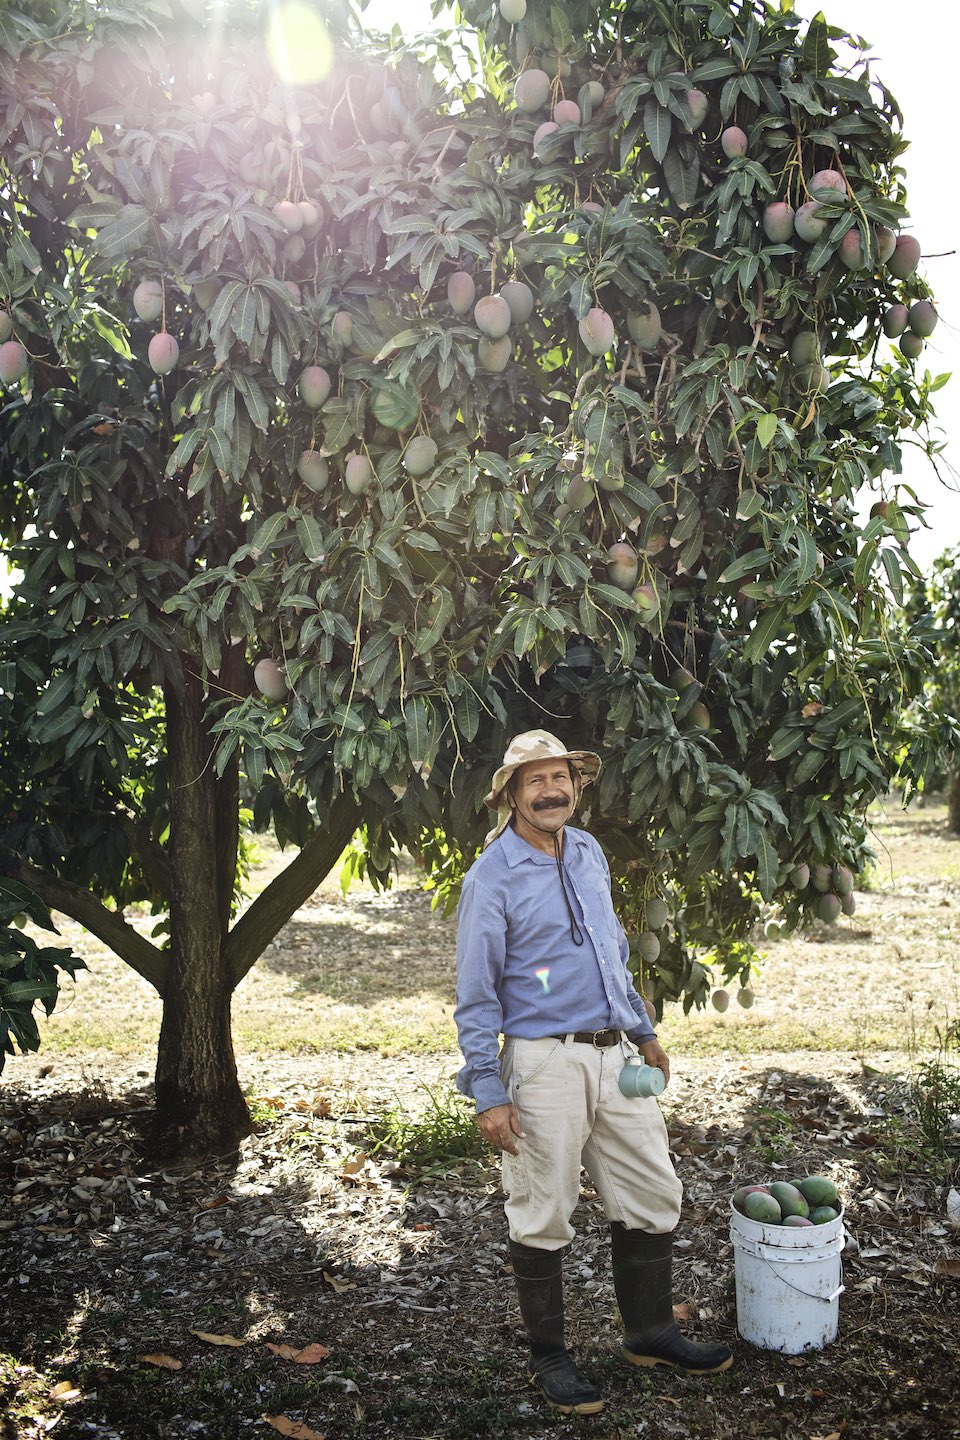 Farmer standing by a mango tree with a bucket carrying his latest harvest.